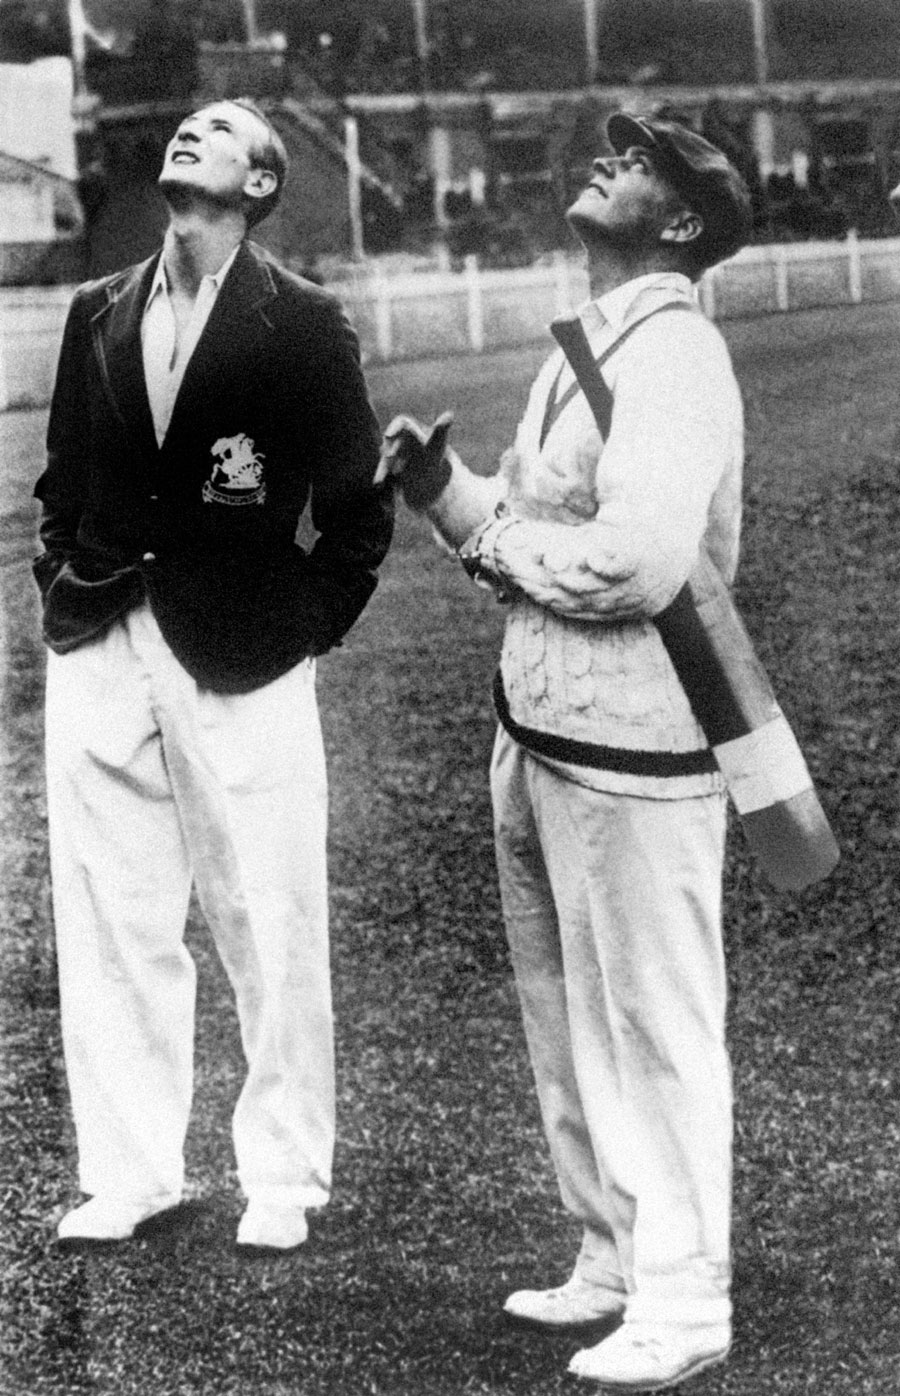 Douglas Jardine and Bill Woodful atthe toss before the Adelaide Test